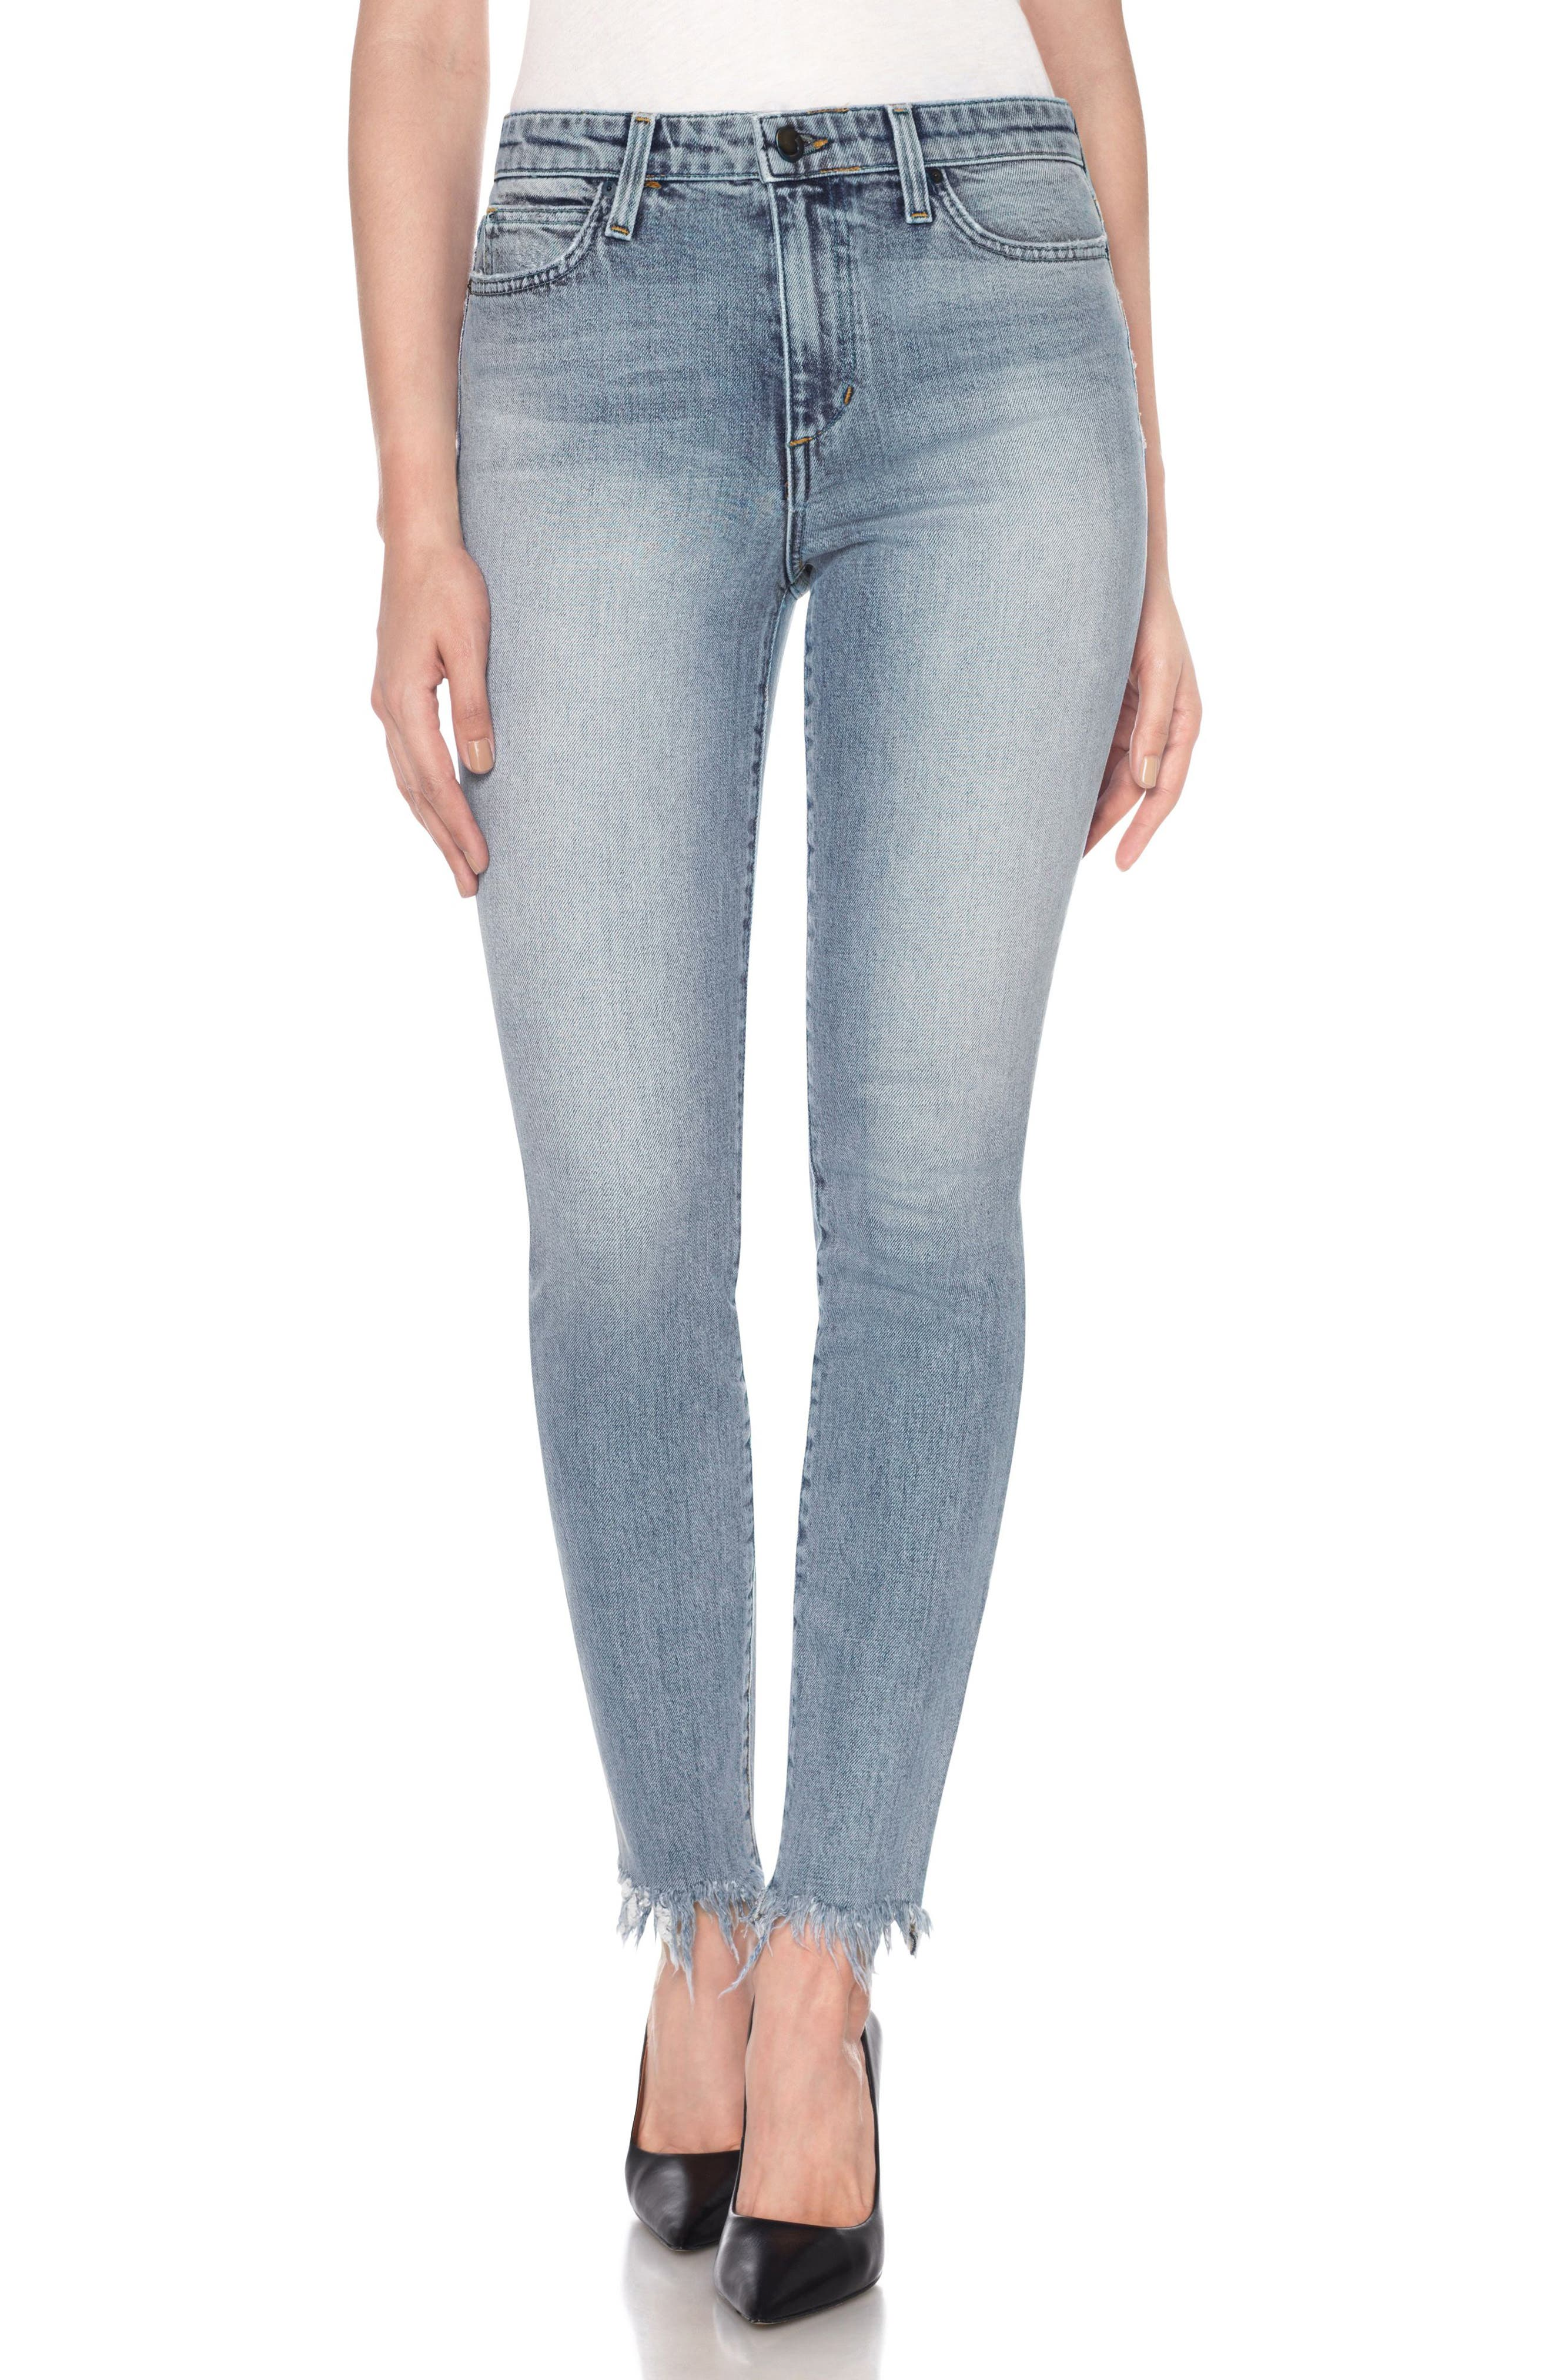 Charlie High Waist Ankle Skinny Jeans,                             Main thumbnail 1, color,                             430